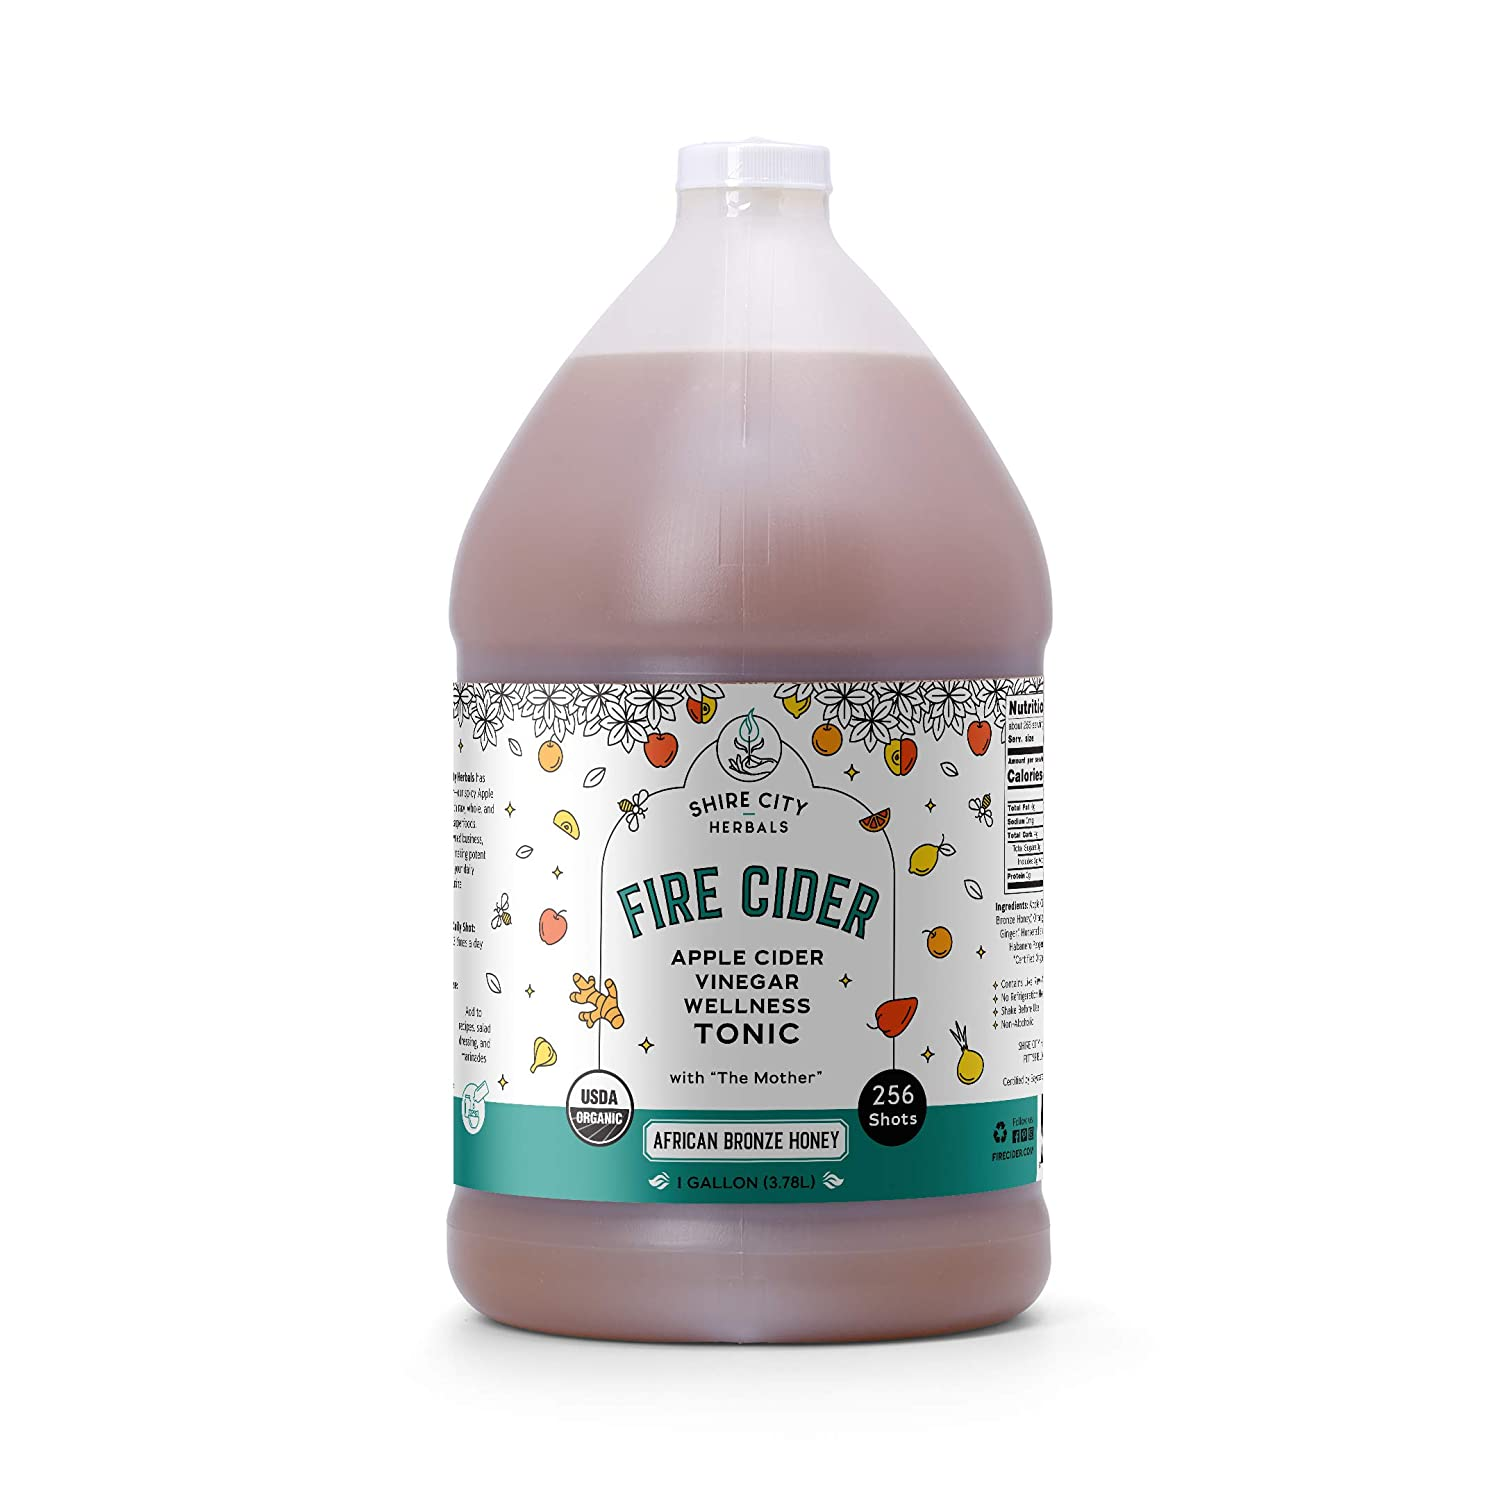 Fire Cider, Tonic, 128 oz (gallon), African Bronze flavor, 256 Daily Shots, Apple Cider Vinegar, Whole, Raw, Organic, Not Heat Processed, Not Pasteurized, Not Diluted, Paleo, Keto, Whole 30.